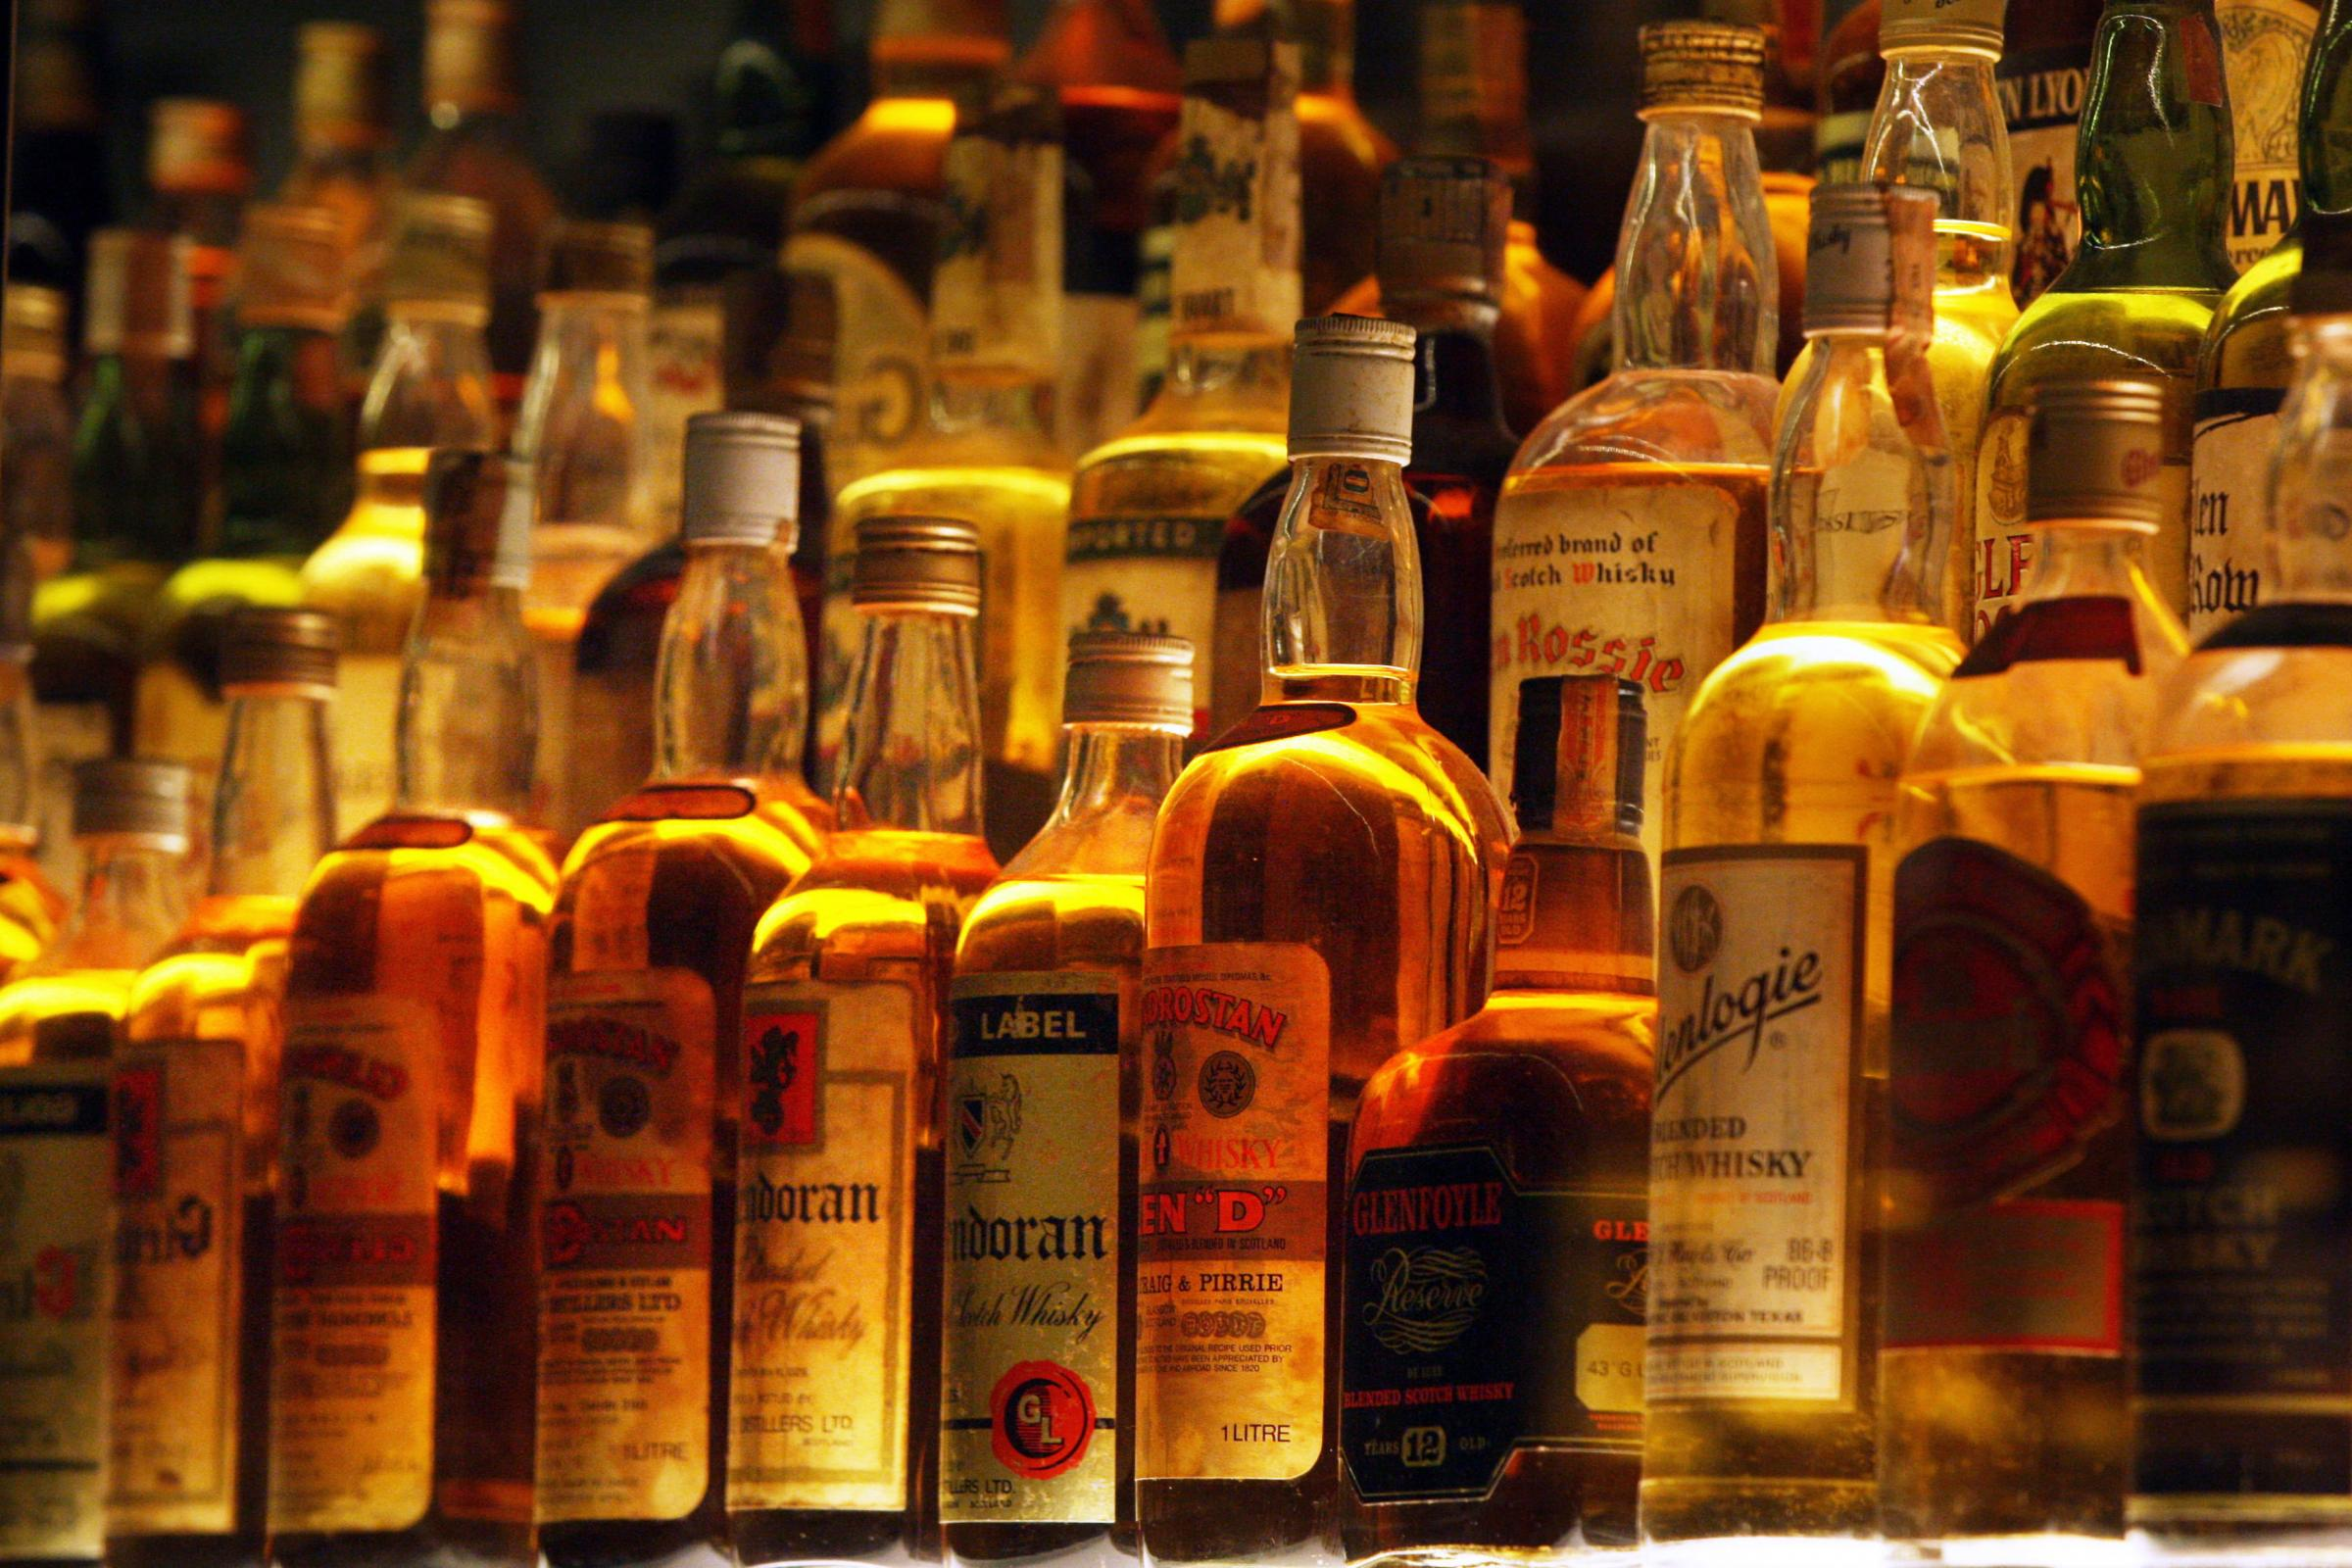 The Scotch Whisky Association (SWA) has given its support to Theresa May's Brexit deal and warned MPs that rejecting it will create